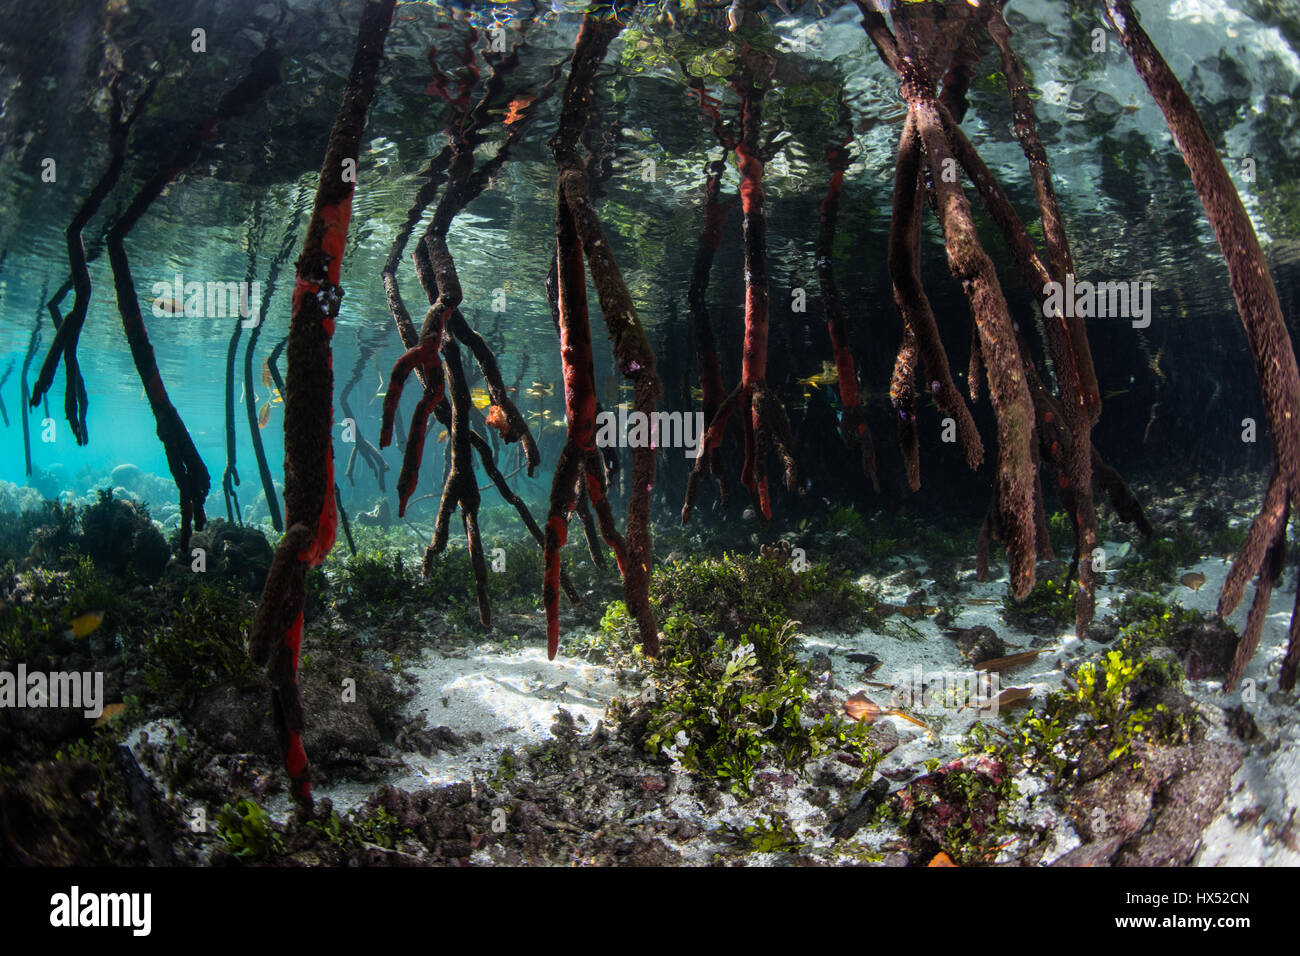 Prop roots descend underwater in a mangrove forest in Raja Ampat, Indonesia. Mangroves serve as vital nurseries - Stock Image